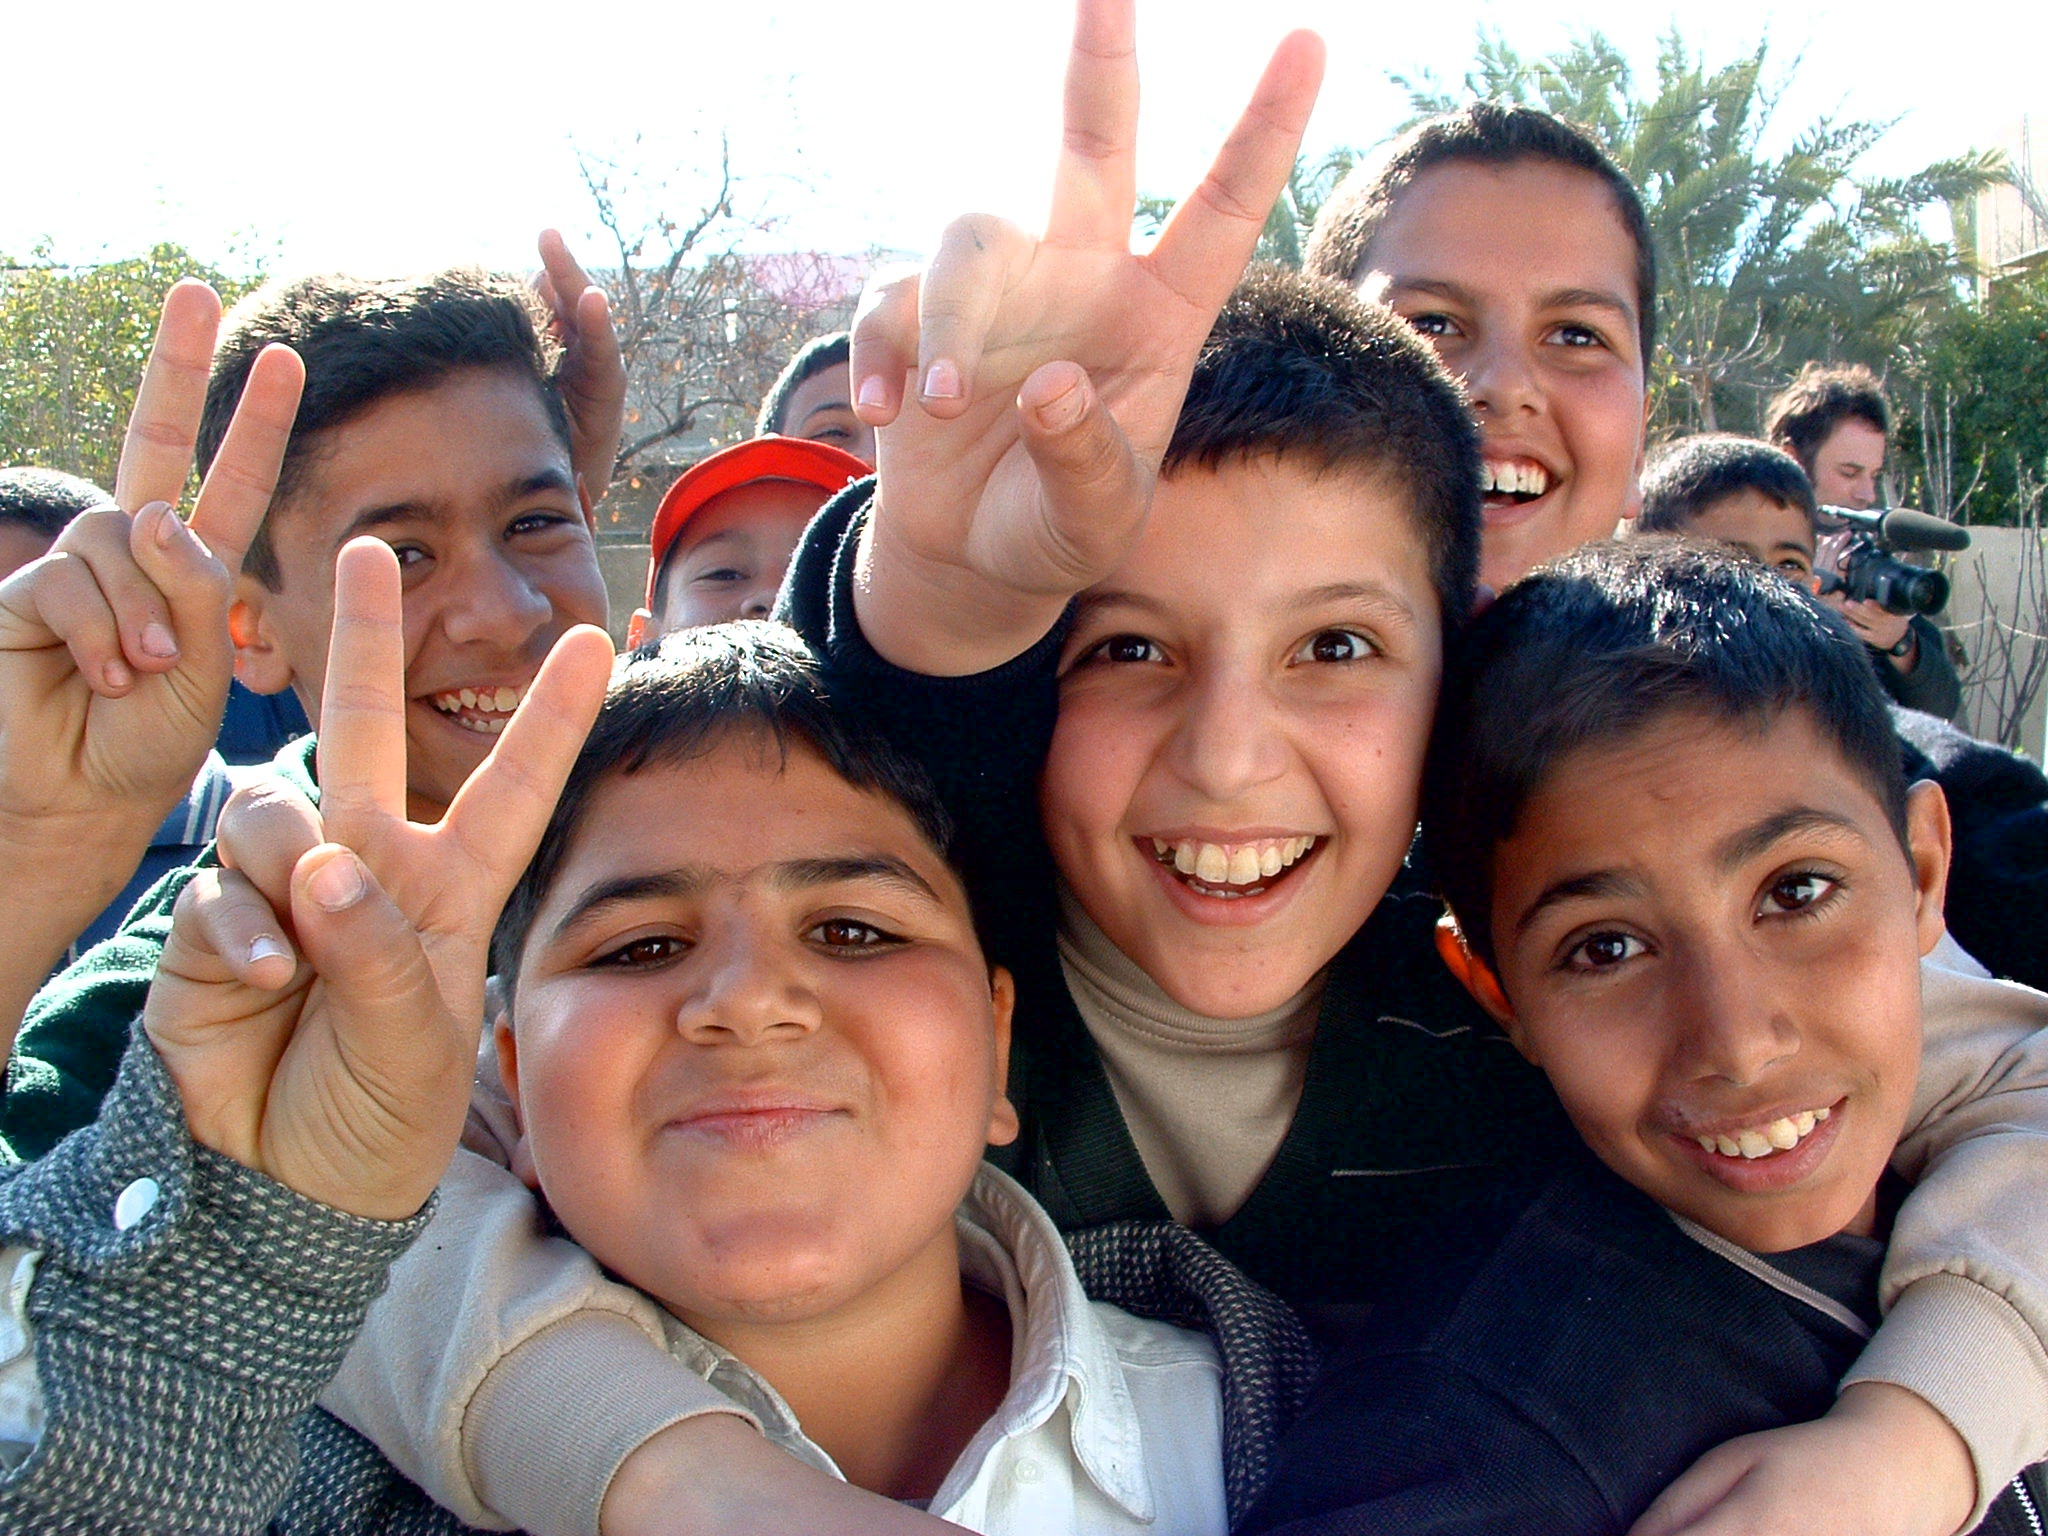 Iraqi_boys_giving_peace_sign.jpg